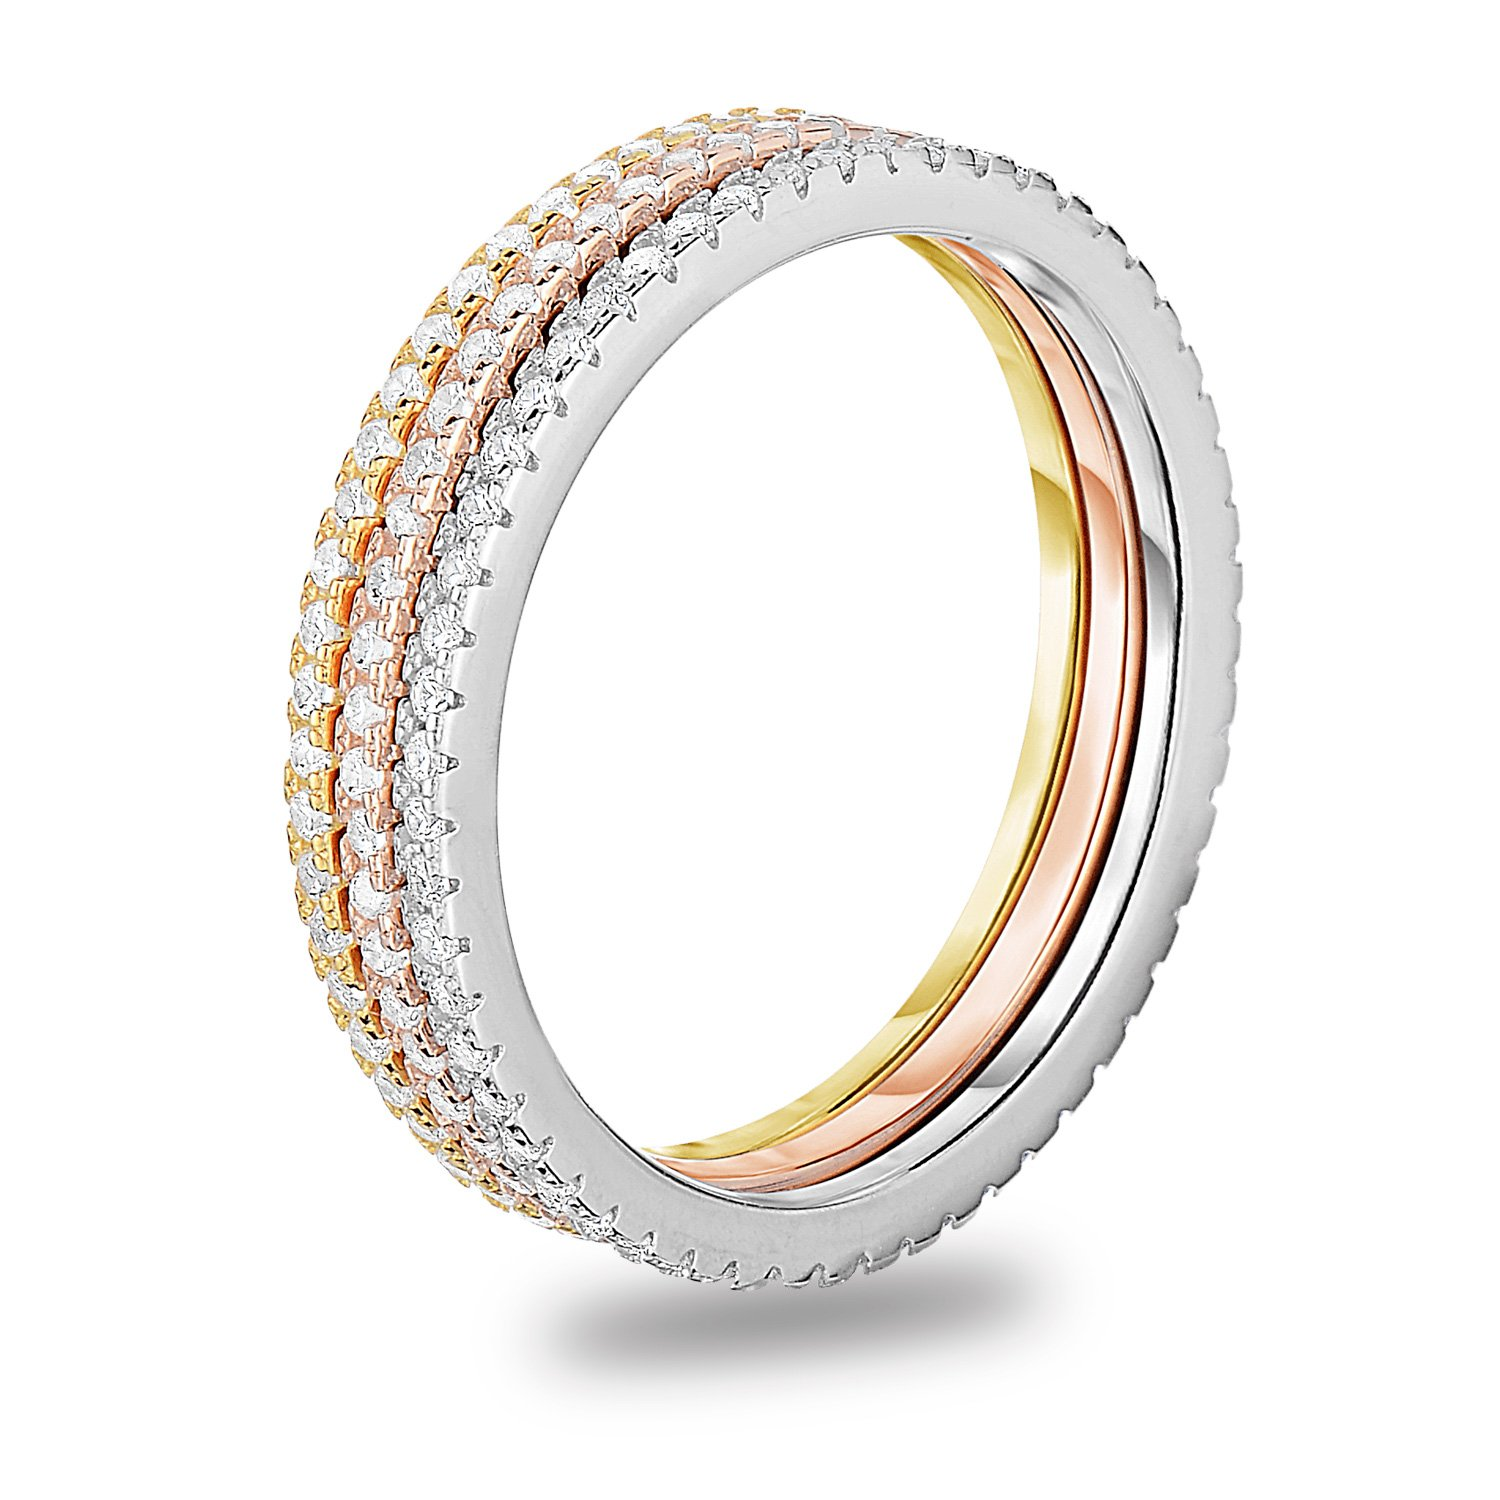 Tri Tone Plated 925 Sterling Silver Cubic Zirconia 3pcs Stackable Stacking Ring Wedding Eternity Band, Size 7